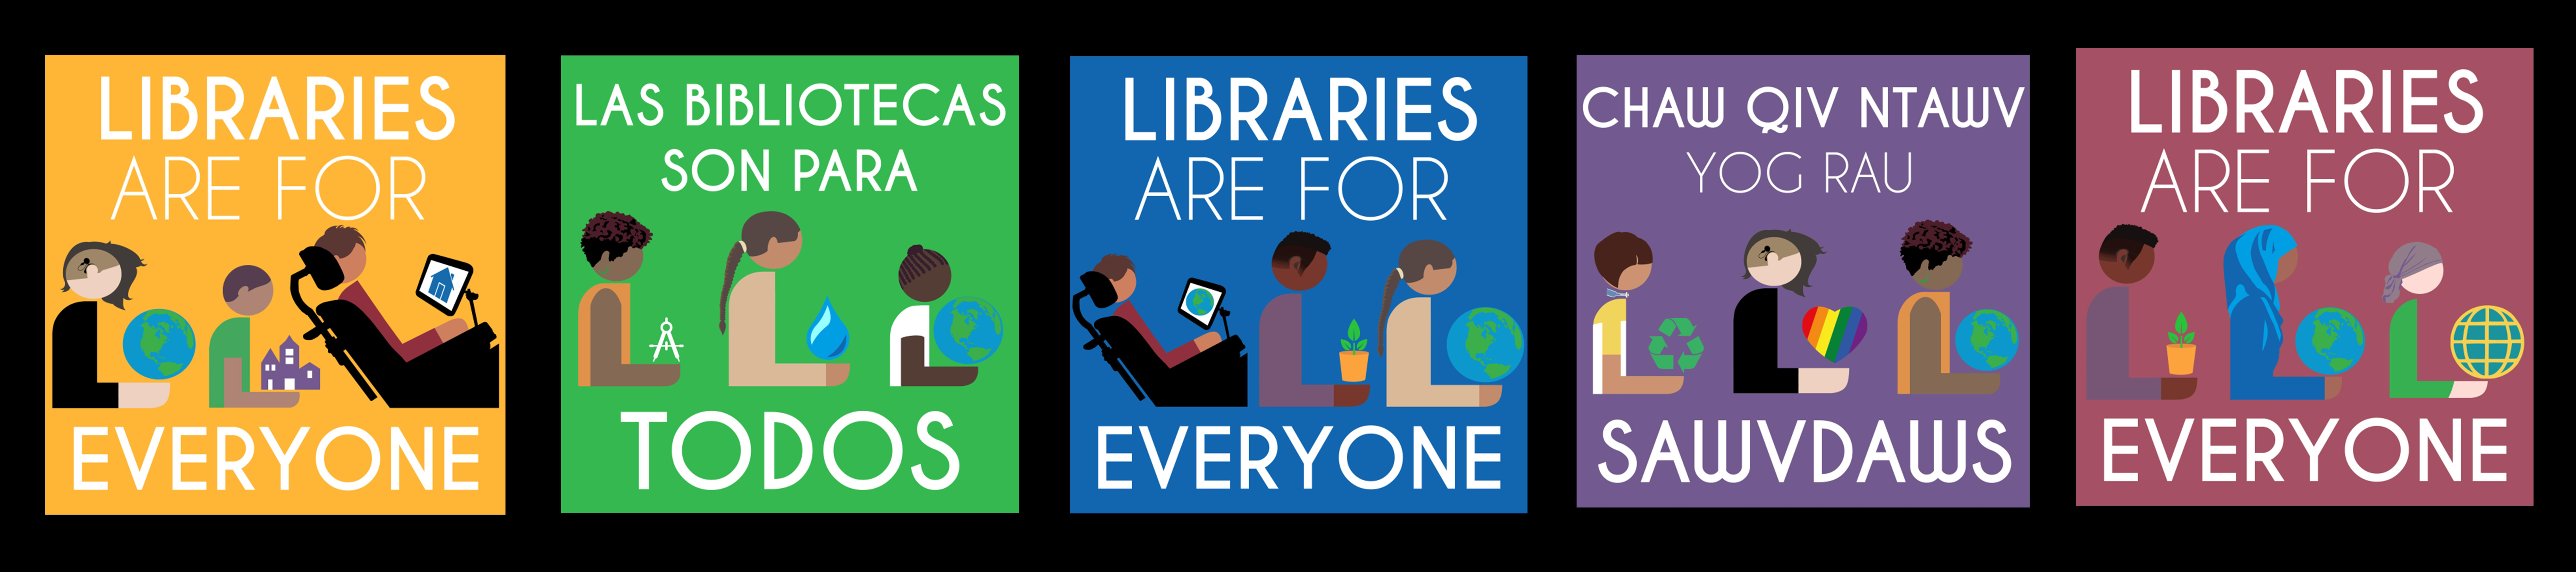 Libraries Are For Everyone!